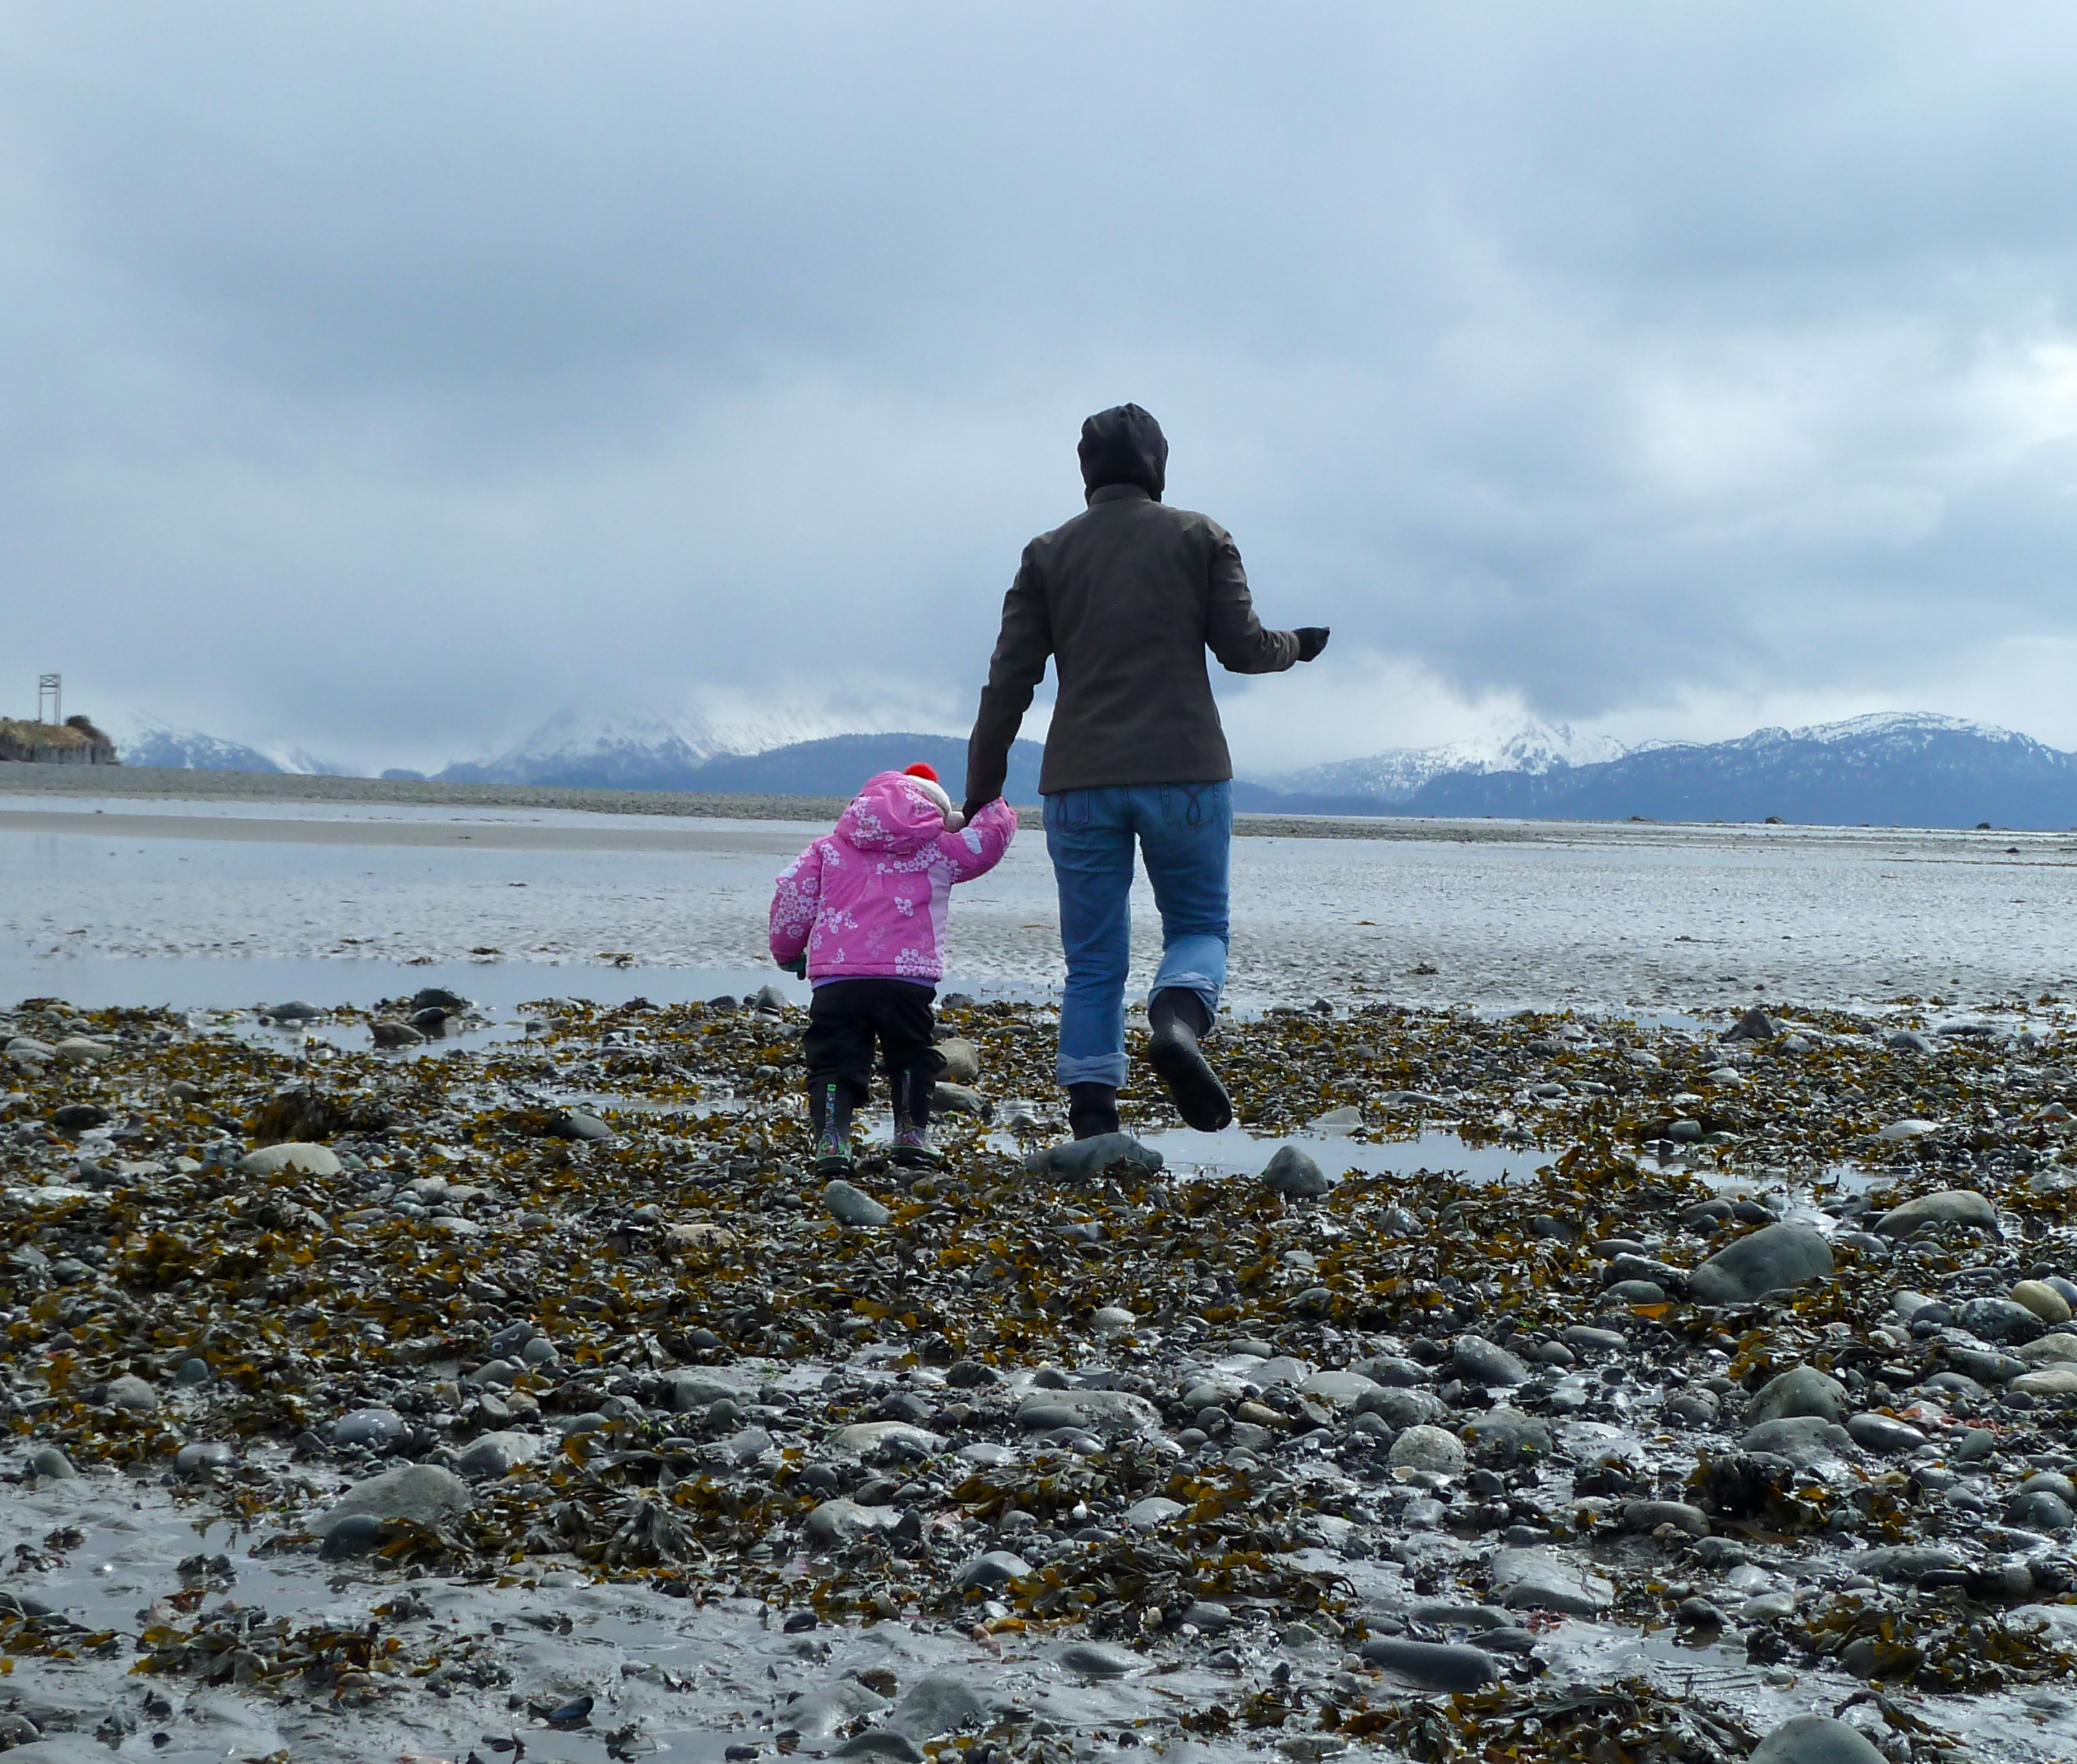 Springtime can be a wonderful season to explore Alaska with kids.